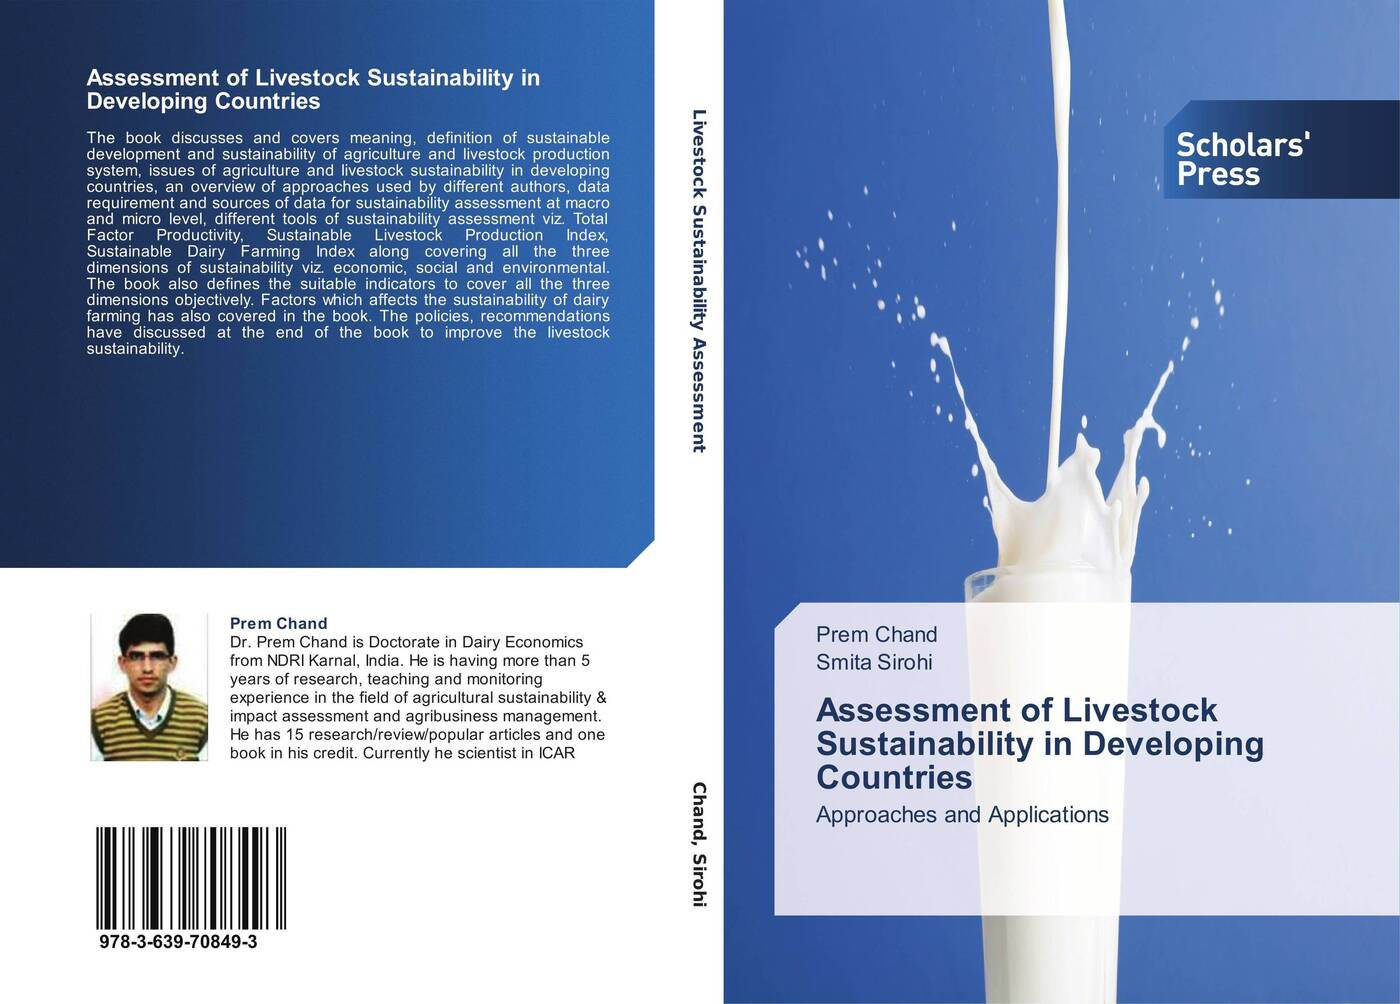 купить Prem Chand and Smita Sirohi Assessment of Livestock Sustainability in Developing Countries по цене 6342 рублей